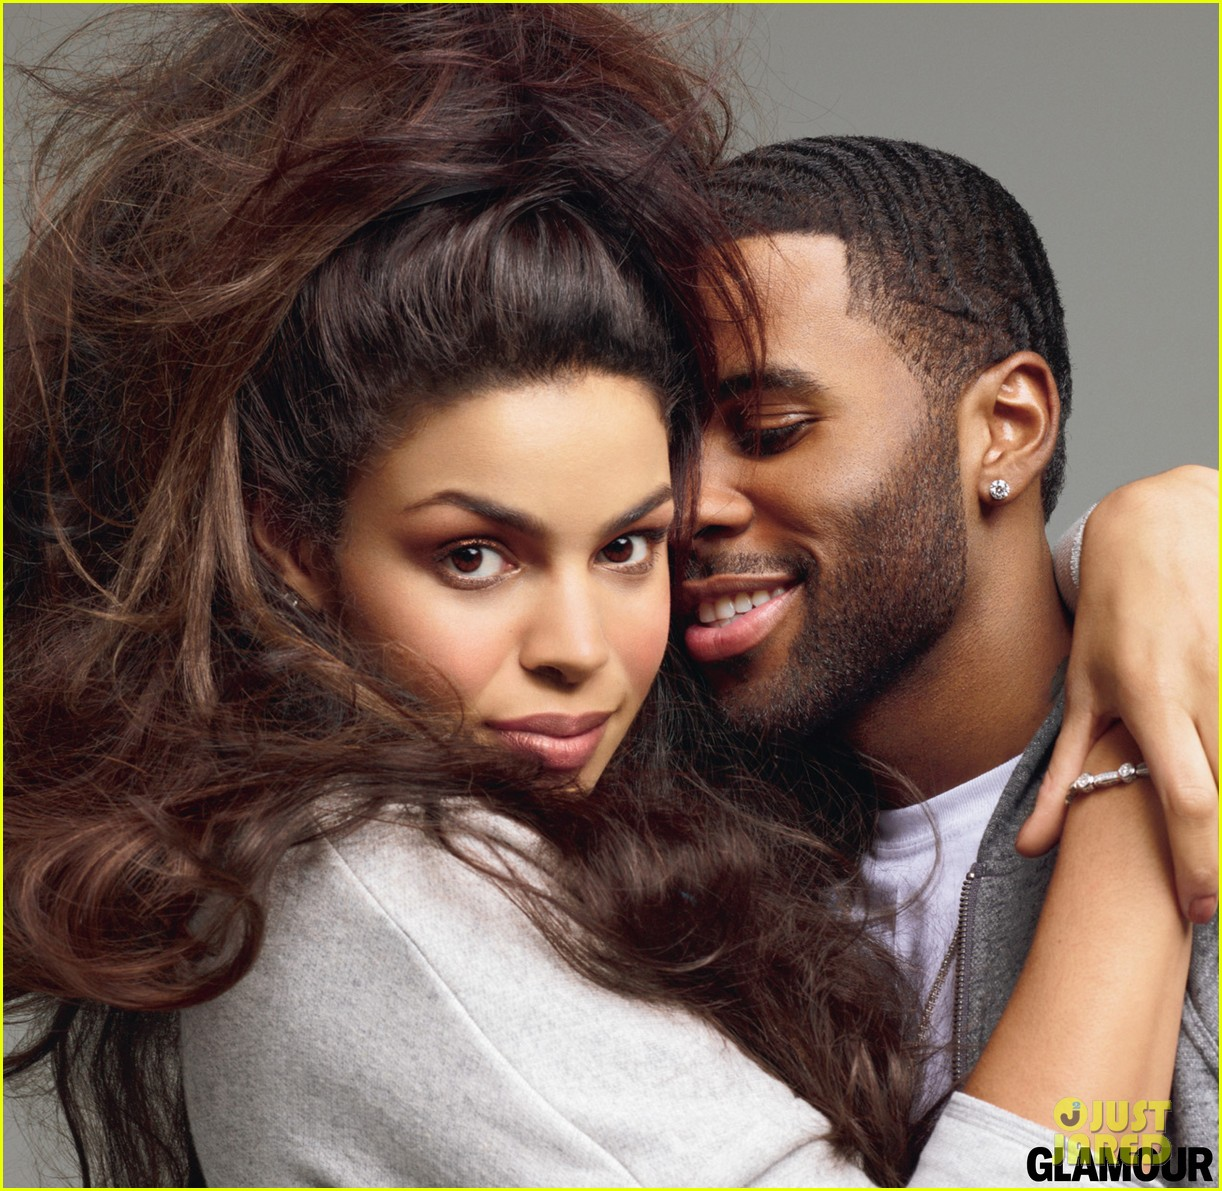 We wonder what JORDIN SPARKS has to say about this .